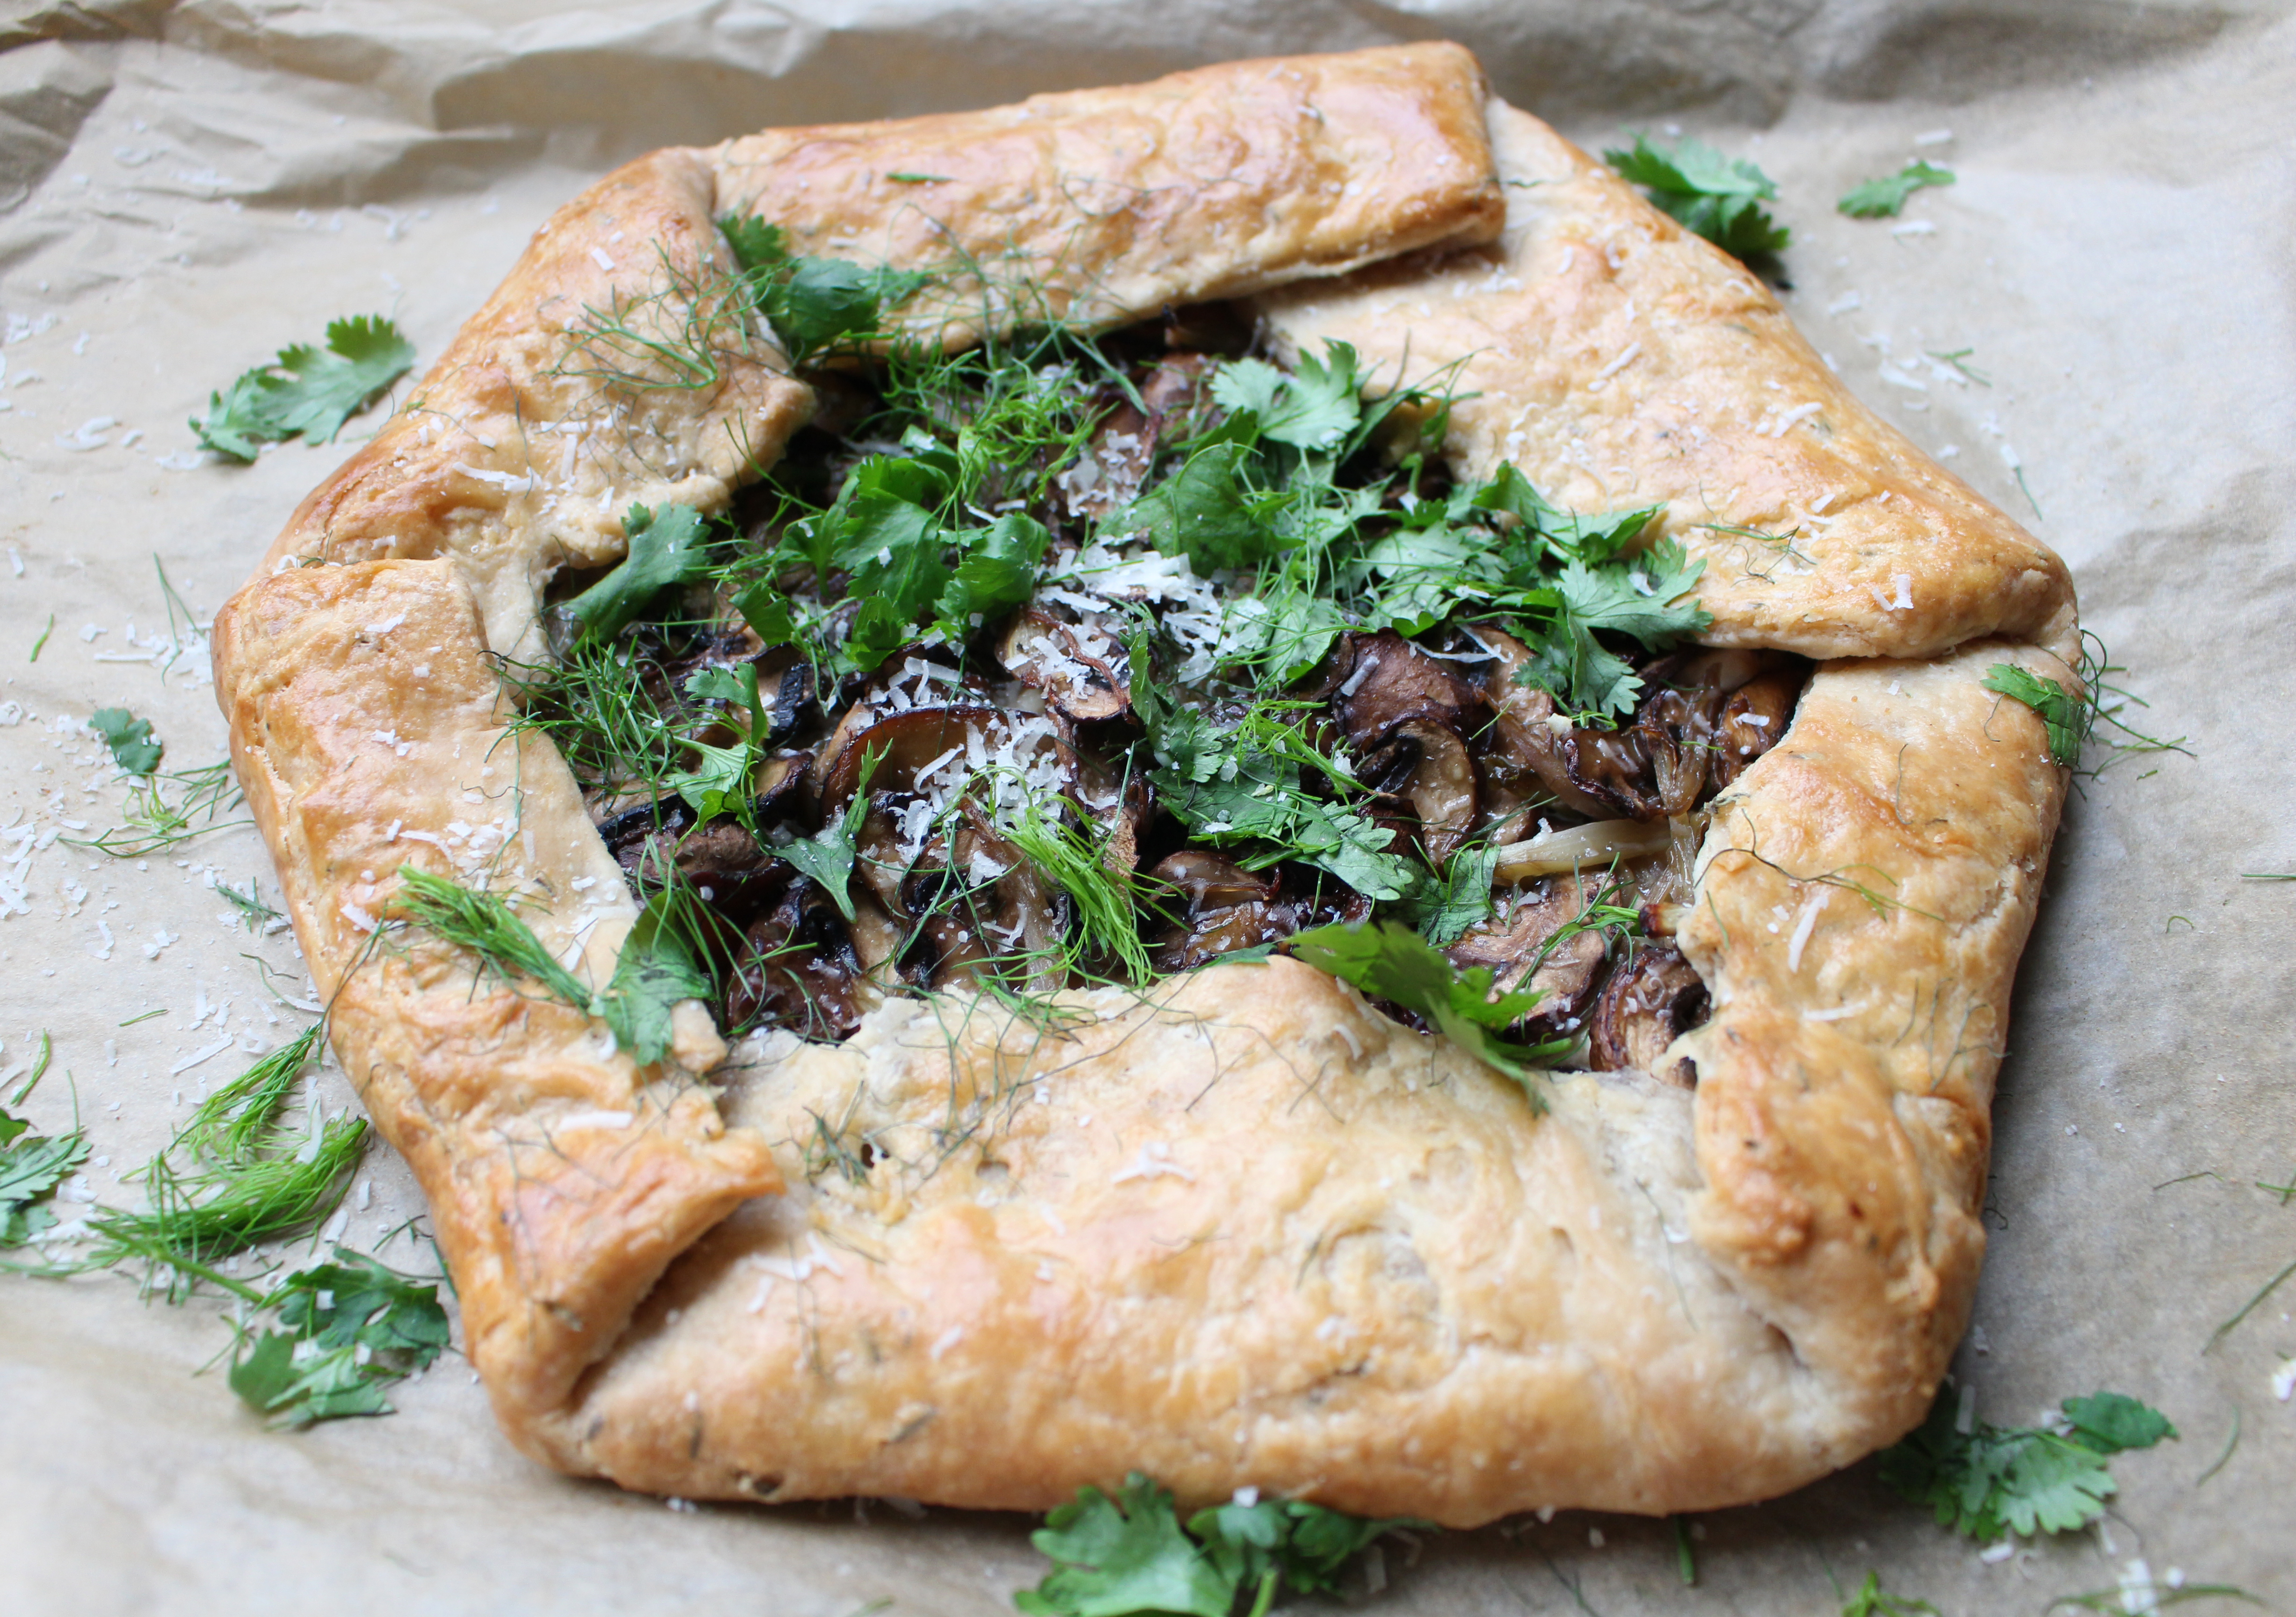 The fluffiest, flaky crust stuffed with ricotta, mushrooms, and fennel. This galette is beautiful and surprisingly simple!